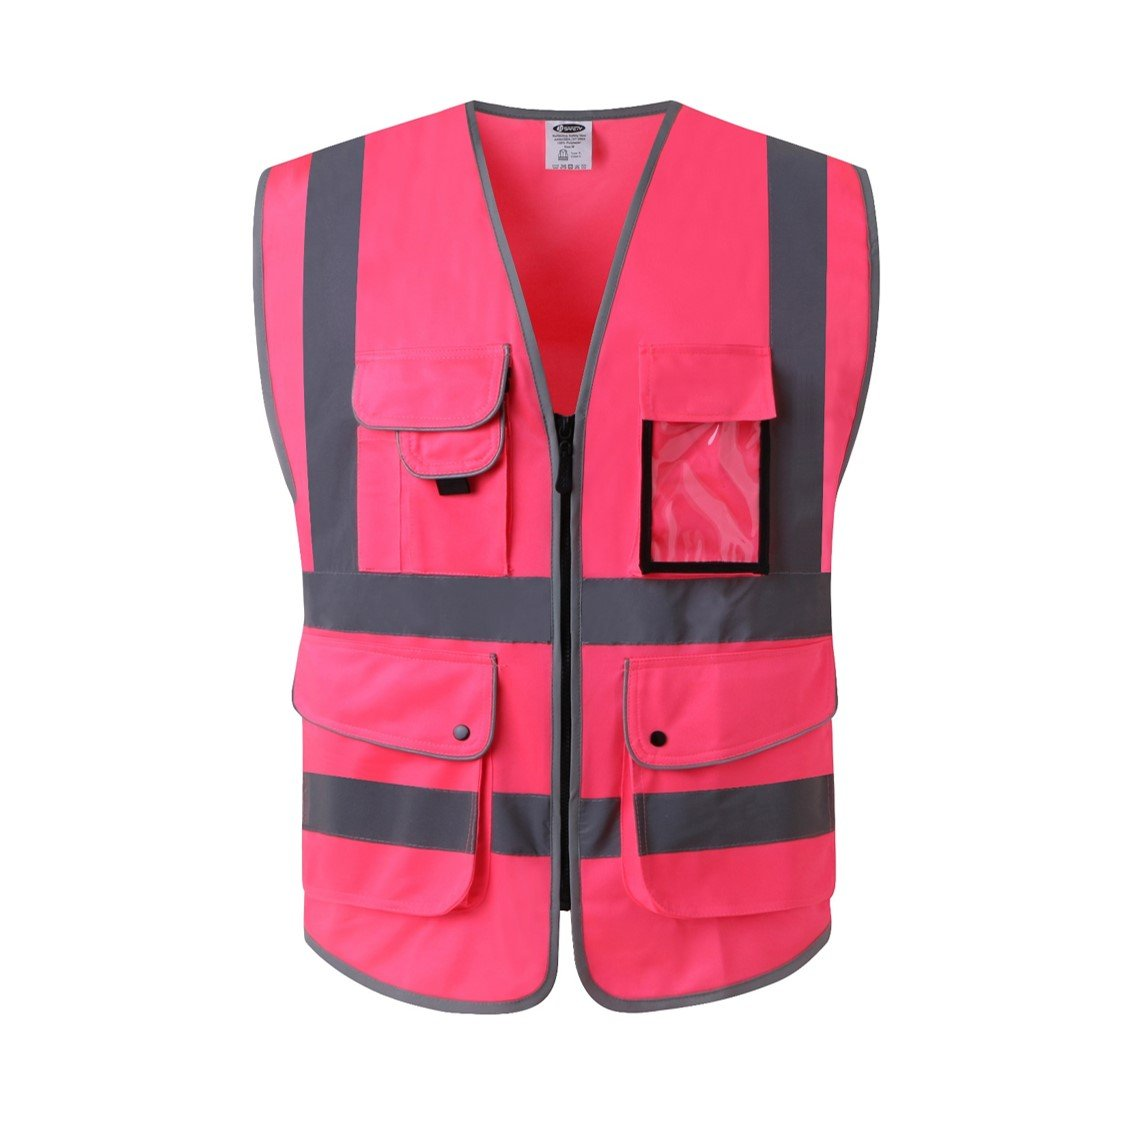 JKSafety 9 Pockets Class 2 High Visibility Zipper Front Safety Vest With Reflective Strips, Meets ANSI/ISEA Standards (Medium, Pink) by JKSafety (Image #1)